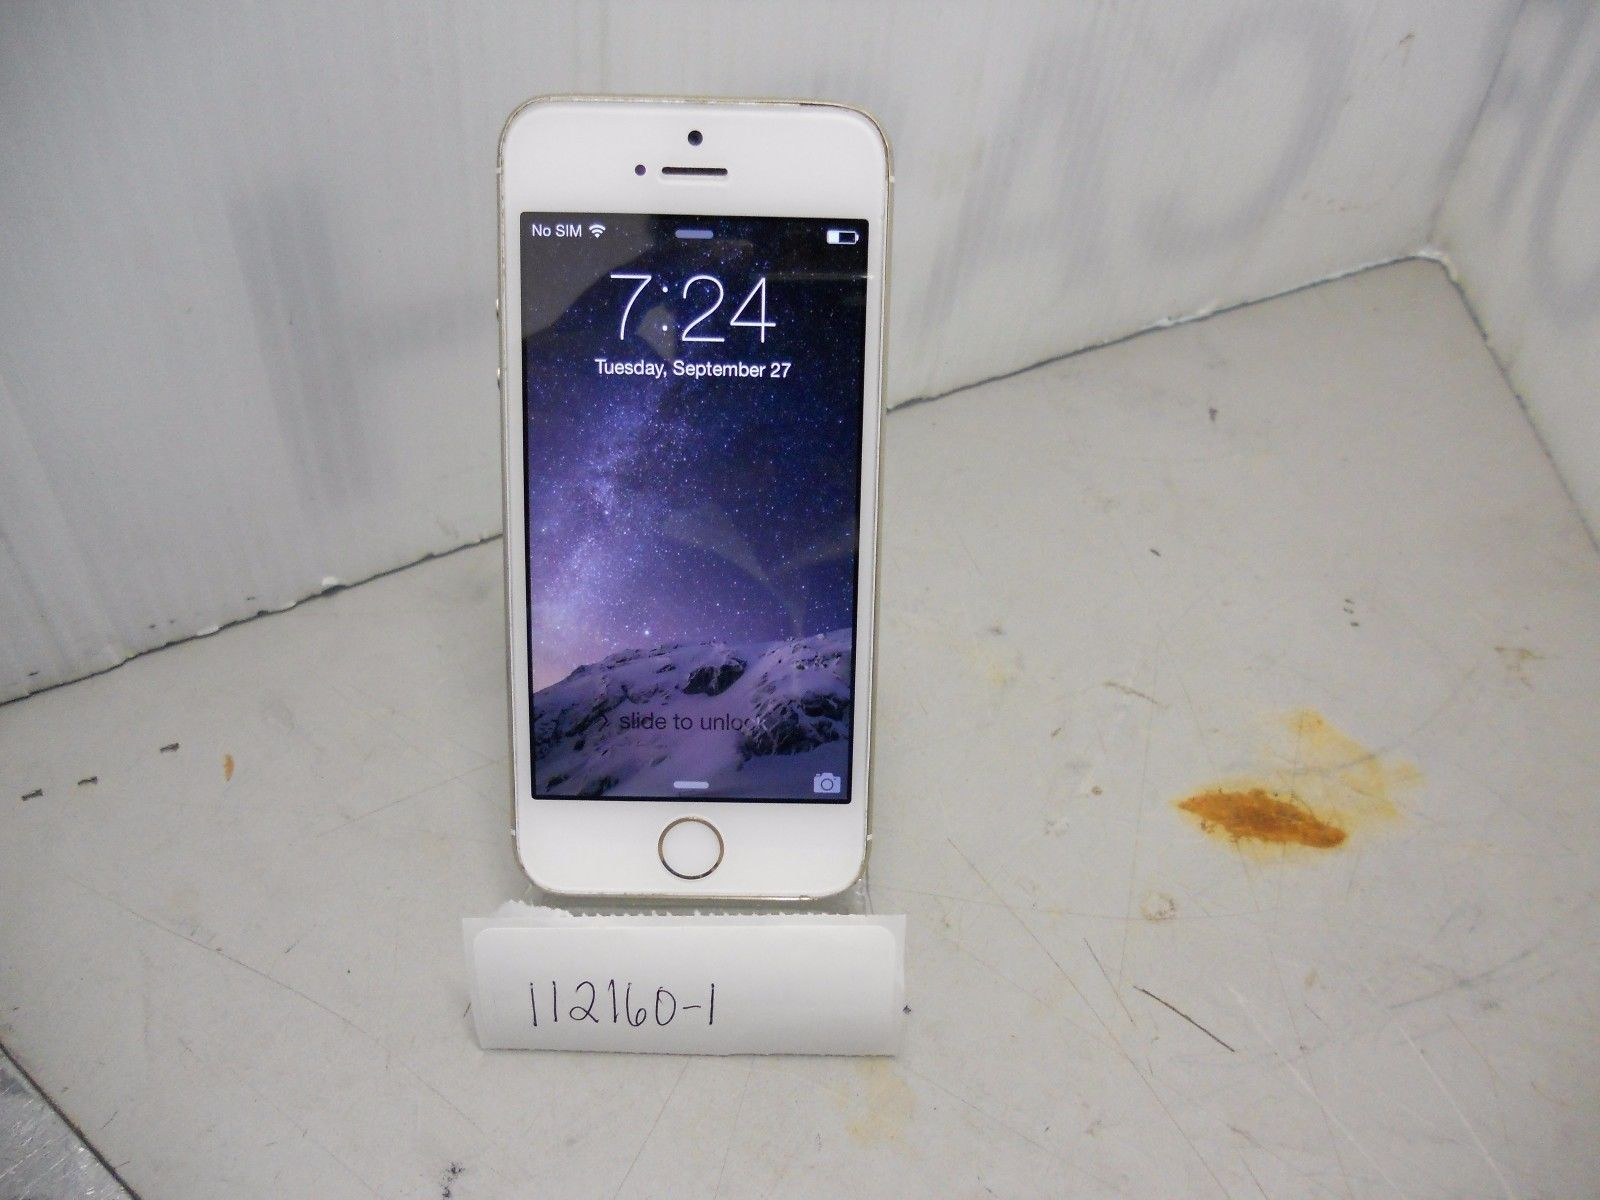 Used iPhone 5s - 16GB - White/Gold (AT&T) ME434E/A Clean ESN https://t.co/JGfVmJB977 https://t.co/WKt4BFhKIg